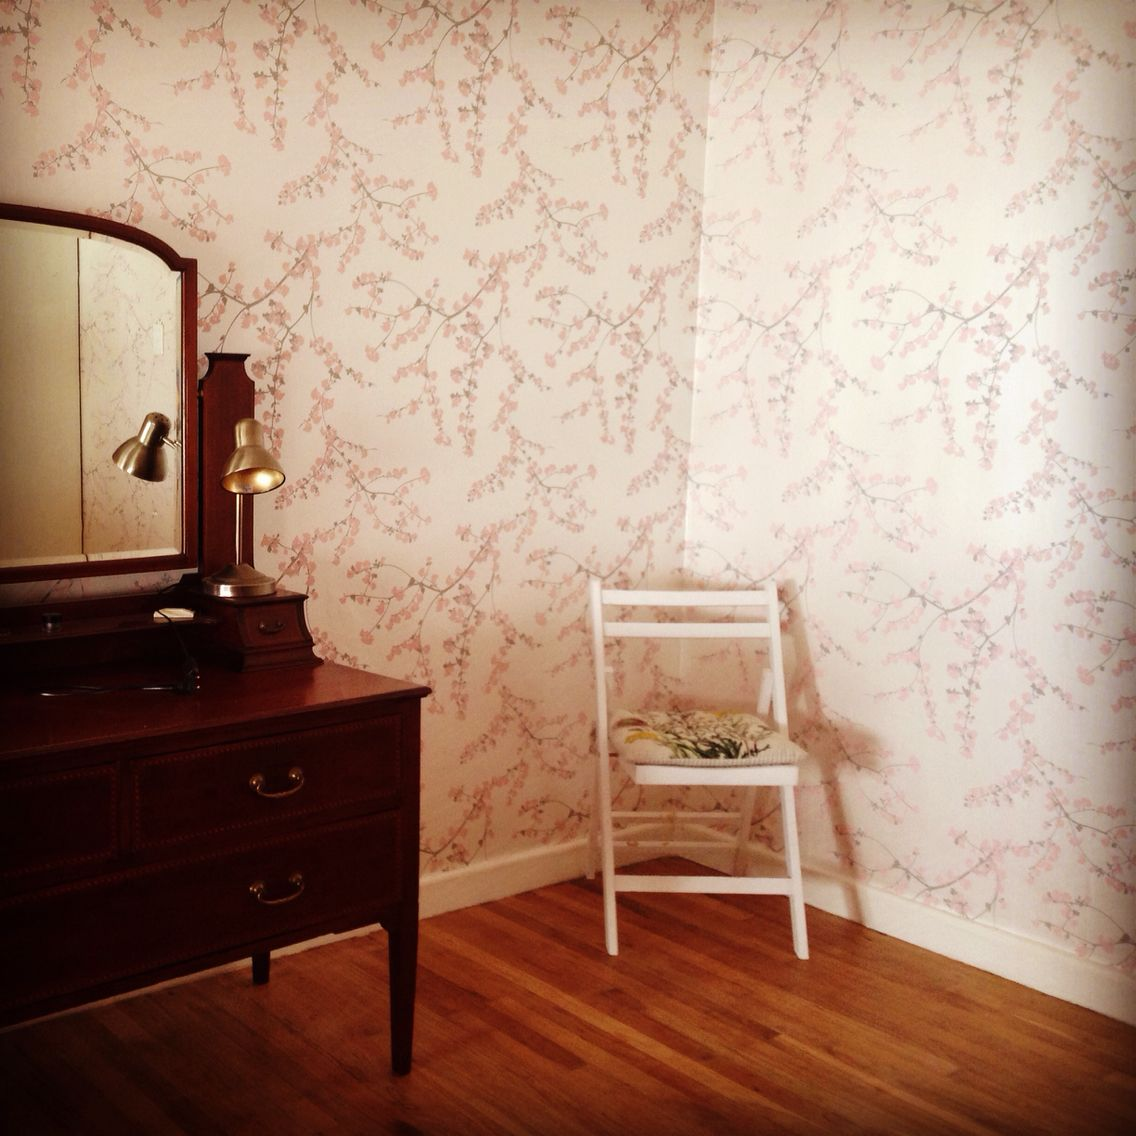 So Happy With My Fiona Wallpaper Nordic Blossom Single Vanity Vanity Wallpaper Bedroom wallpaper cape town